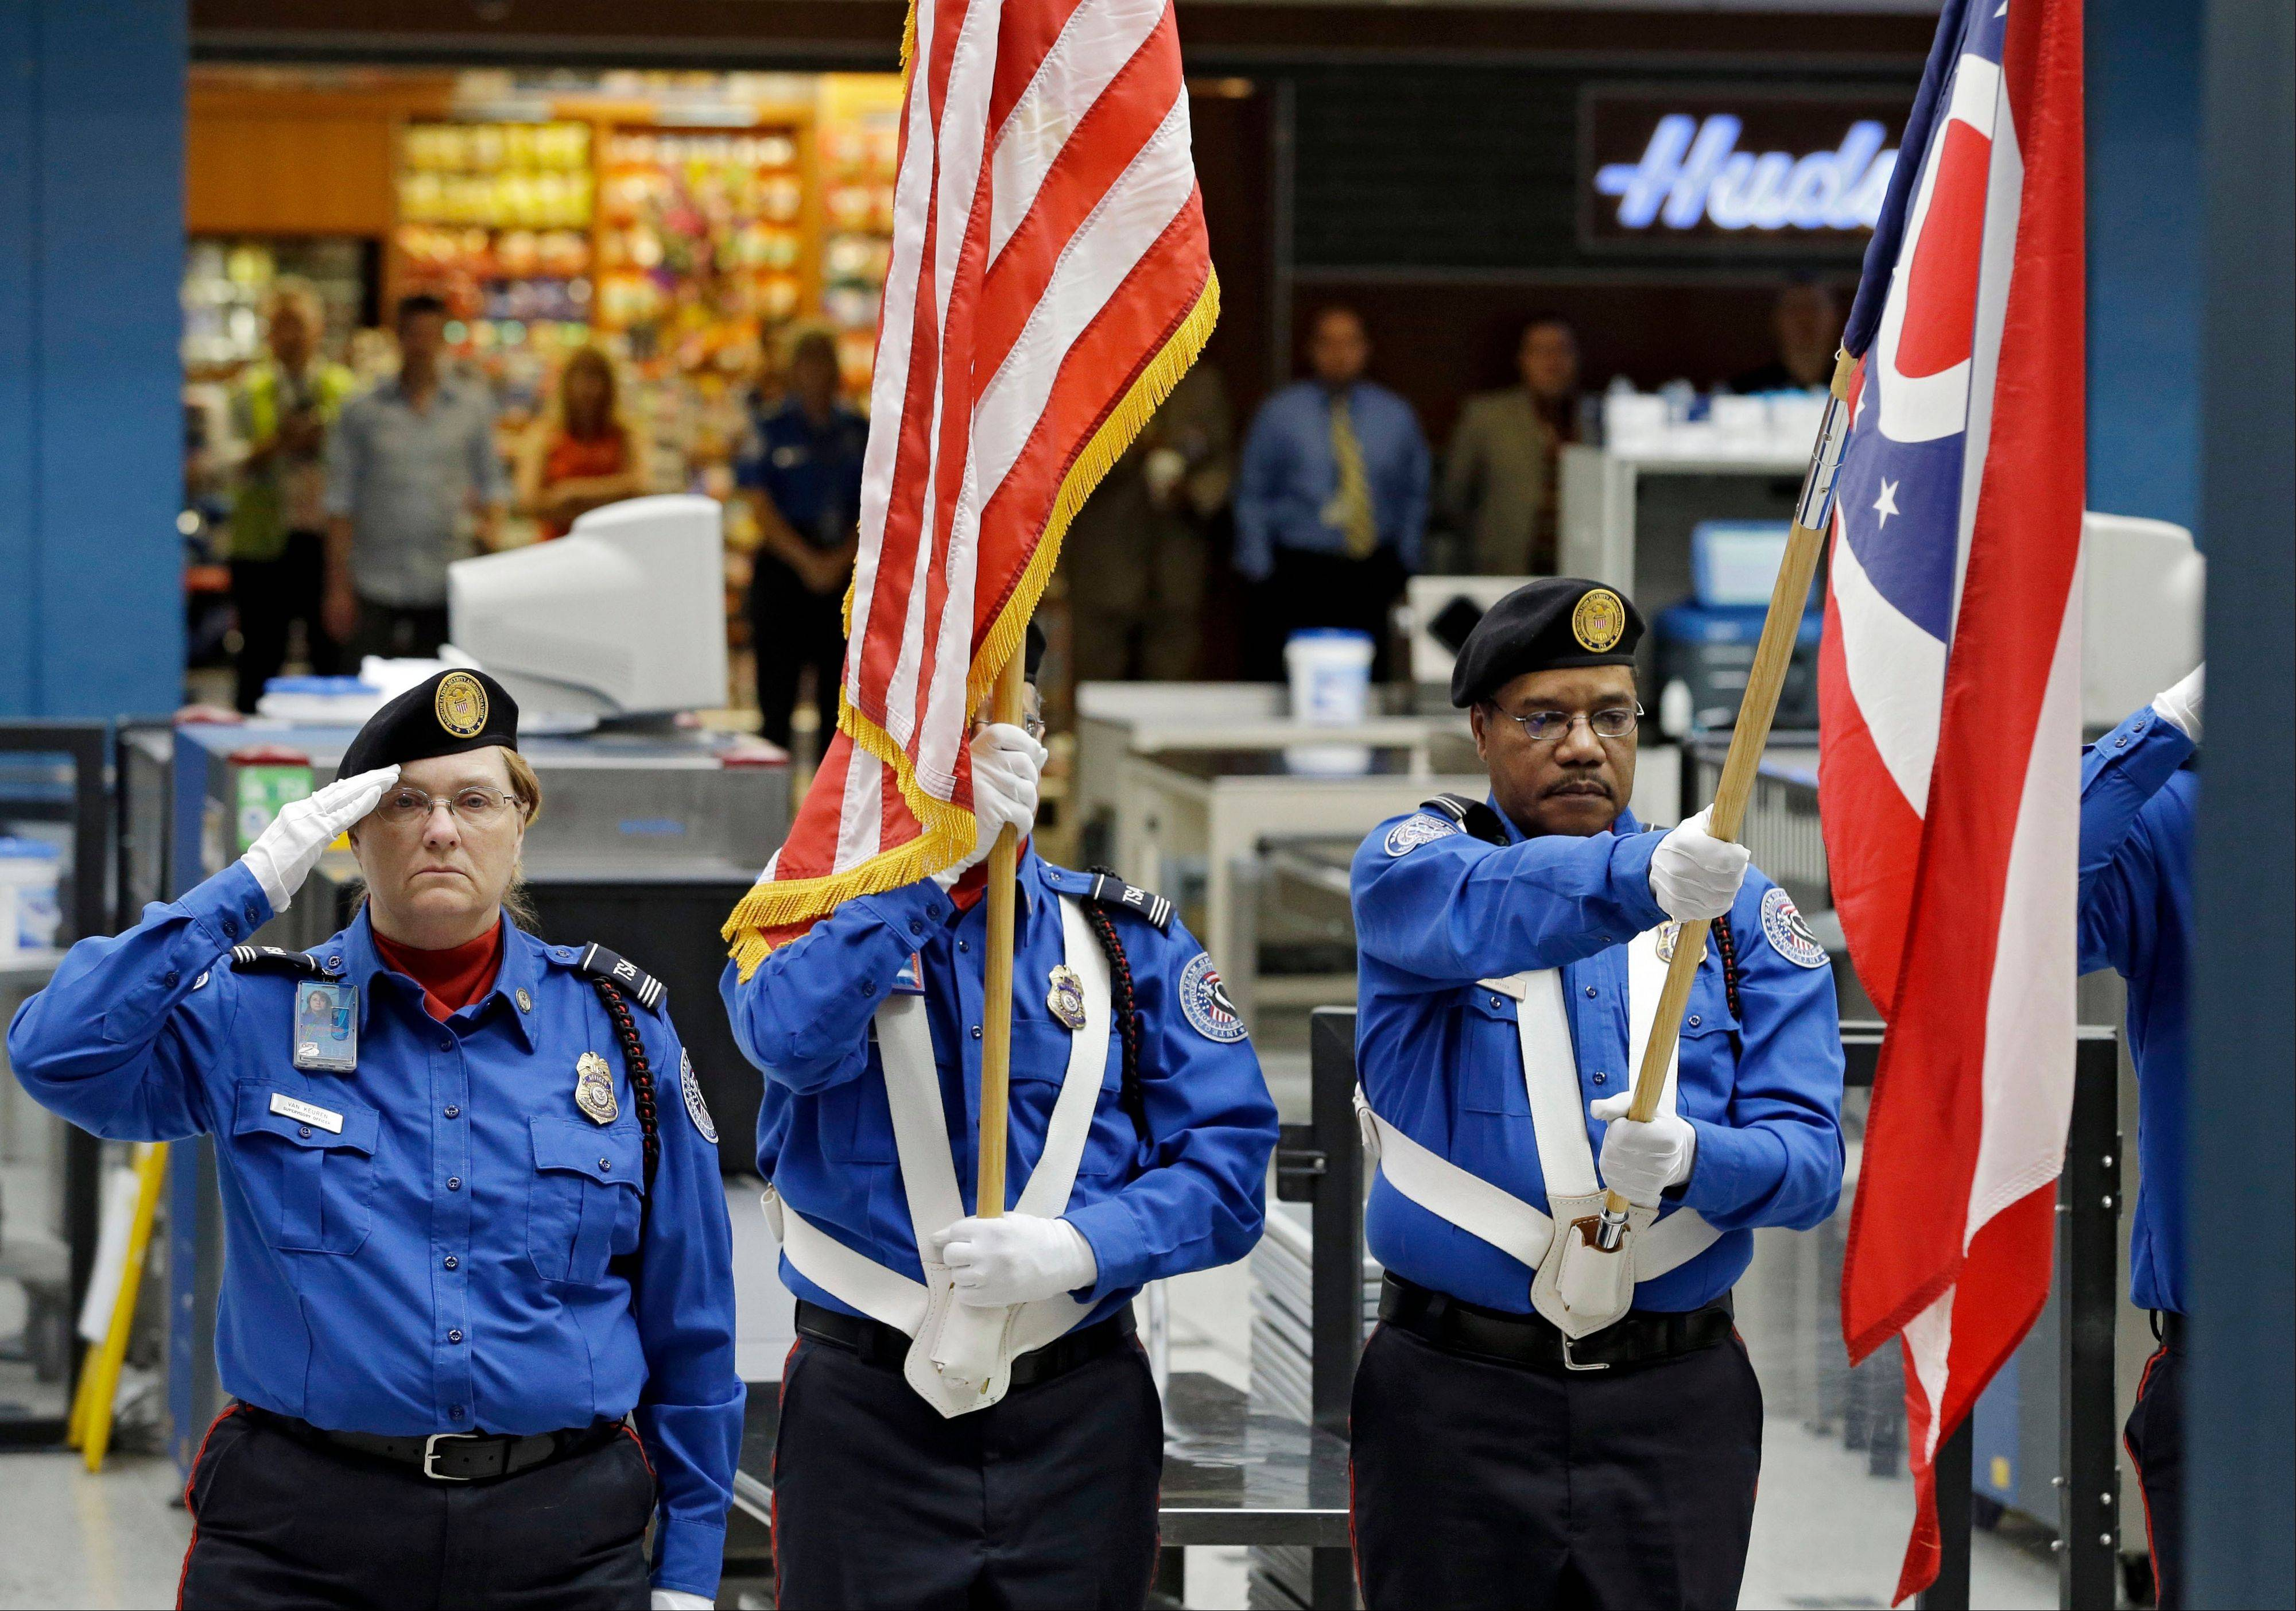 A TSA color guard takes part in a ceremony at Cleveland Hopkins Airport Wednesday, Sept. 11, 2013, marking the 12th anniversary of the 9/11 terror attacks.